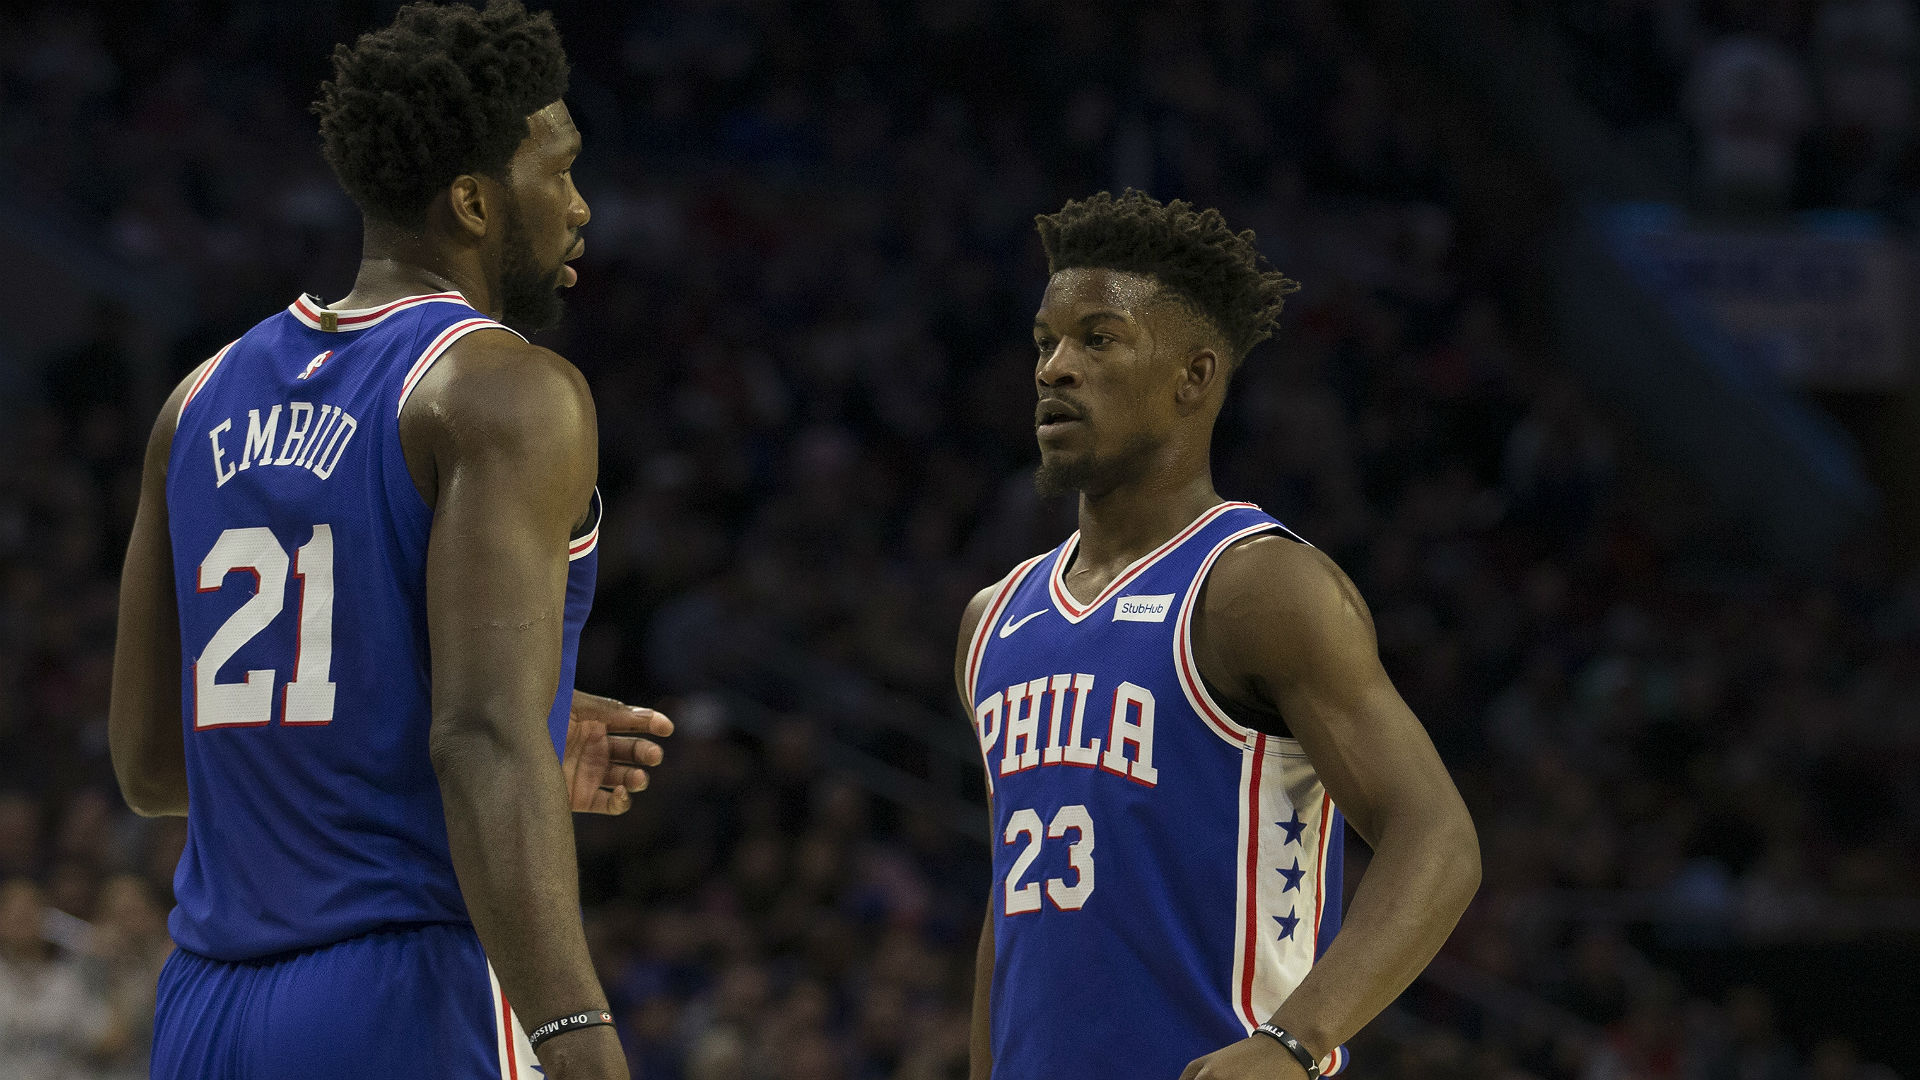 Butler responds Embiid's comments